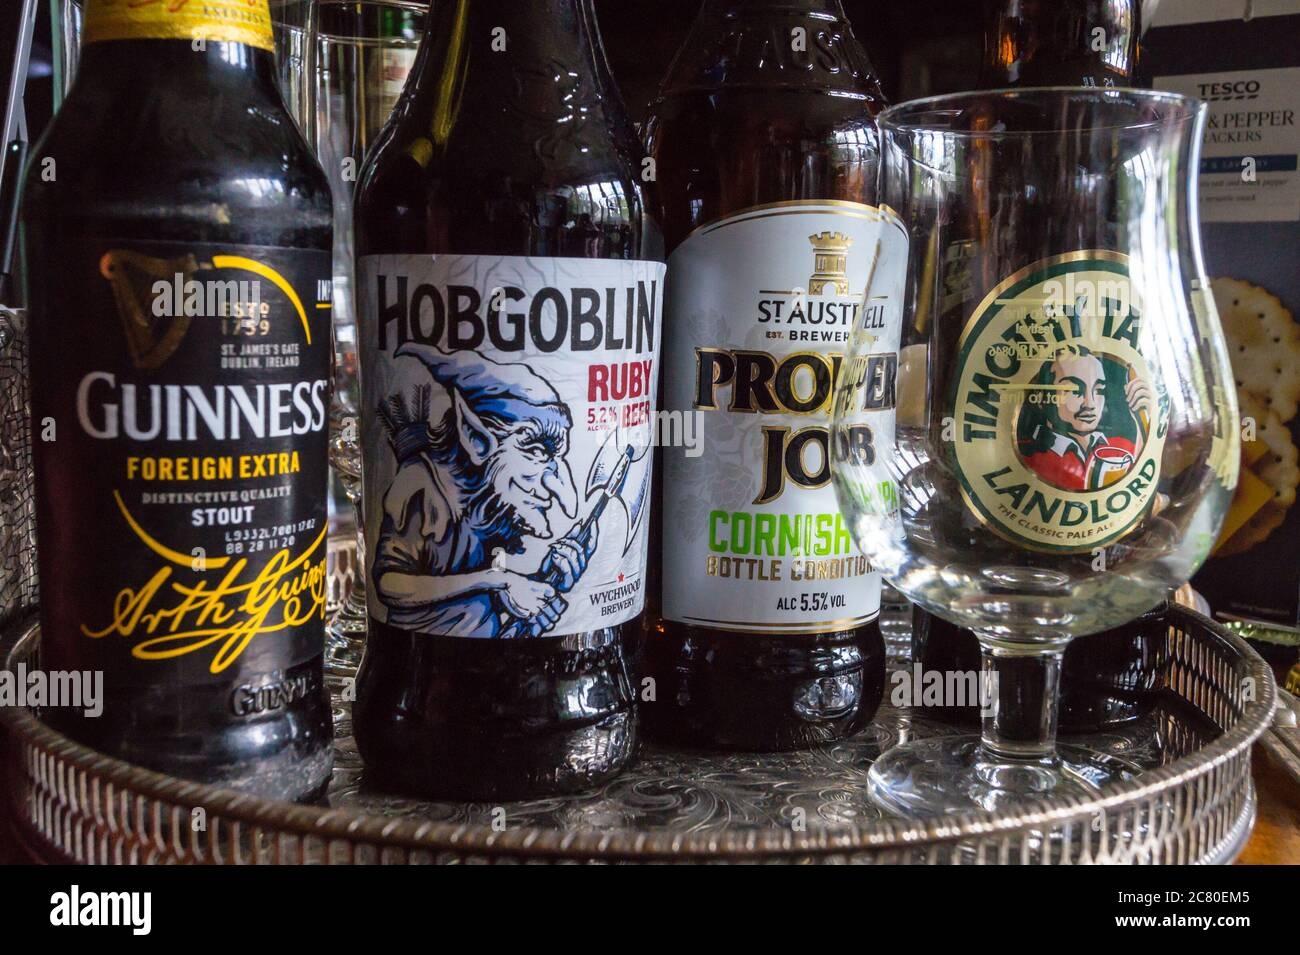 bottles-of-beer-on-a-dining-table-selected-for-an-online-camra-beer-tasting-event-during-covid-19-pandemic-2C80EM5.jpg